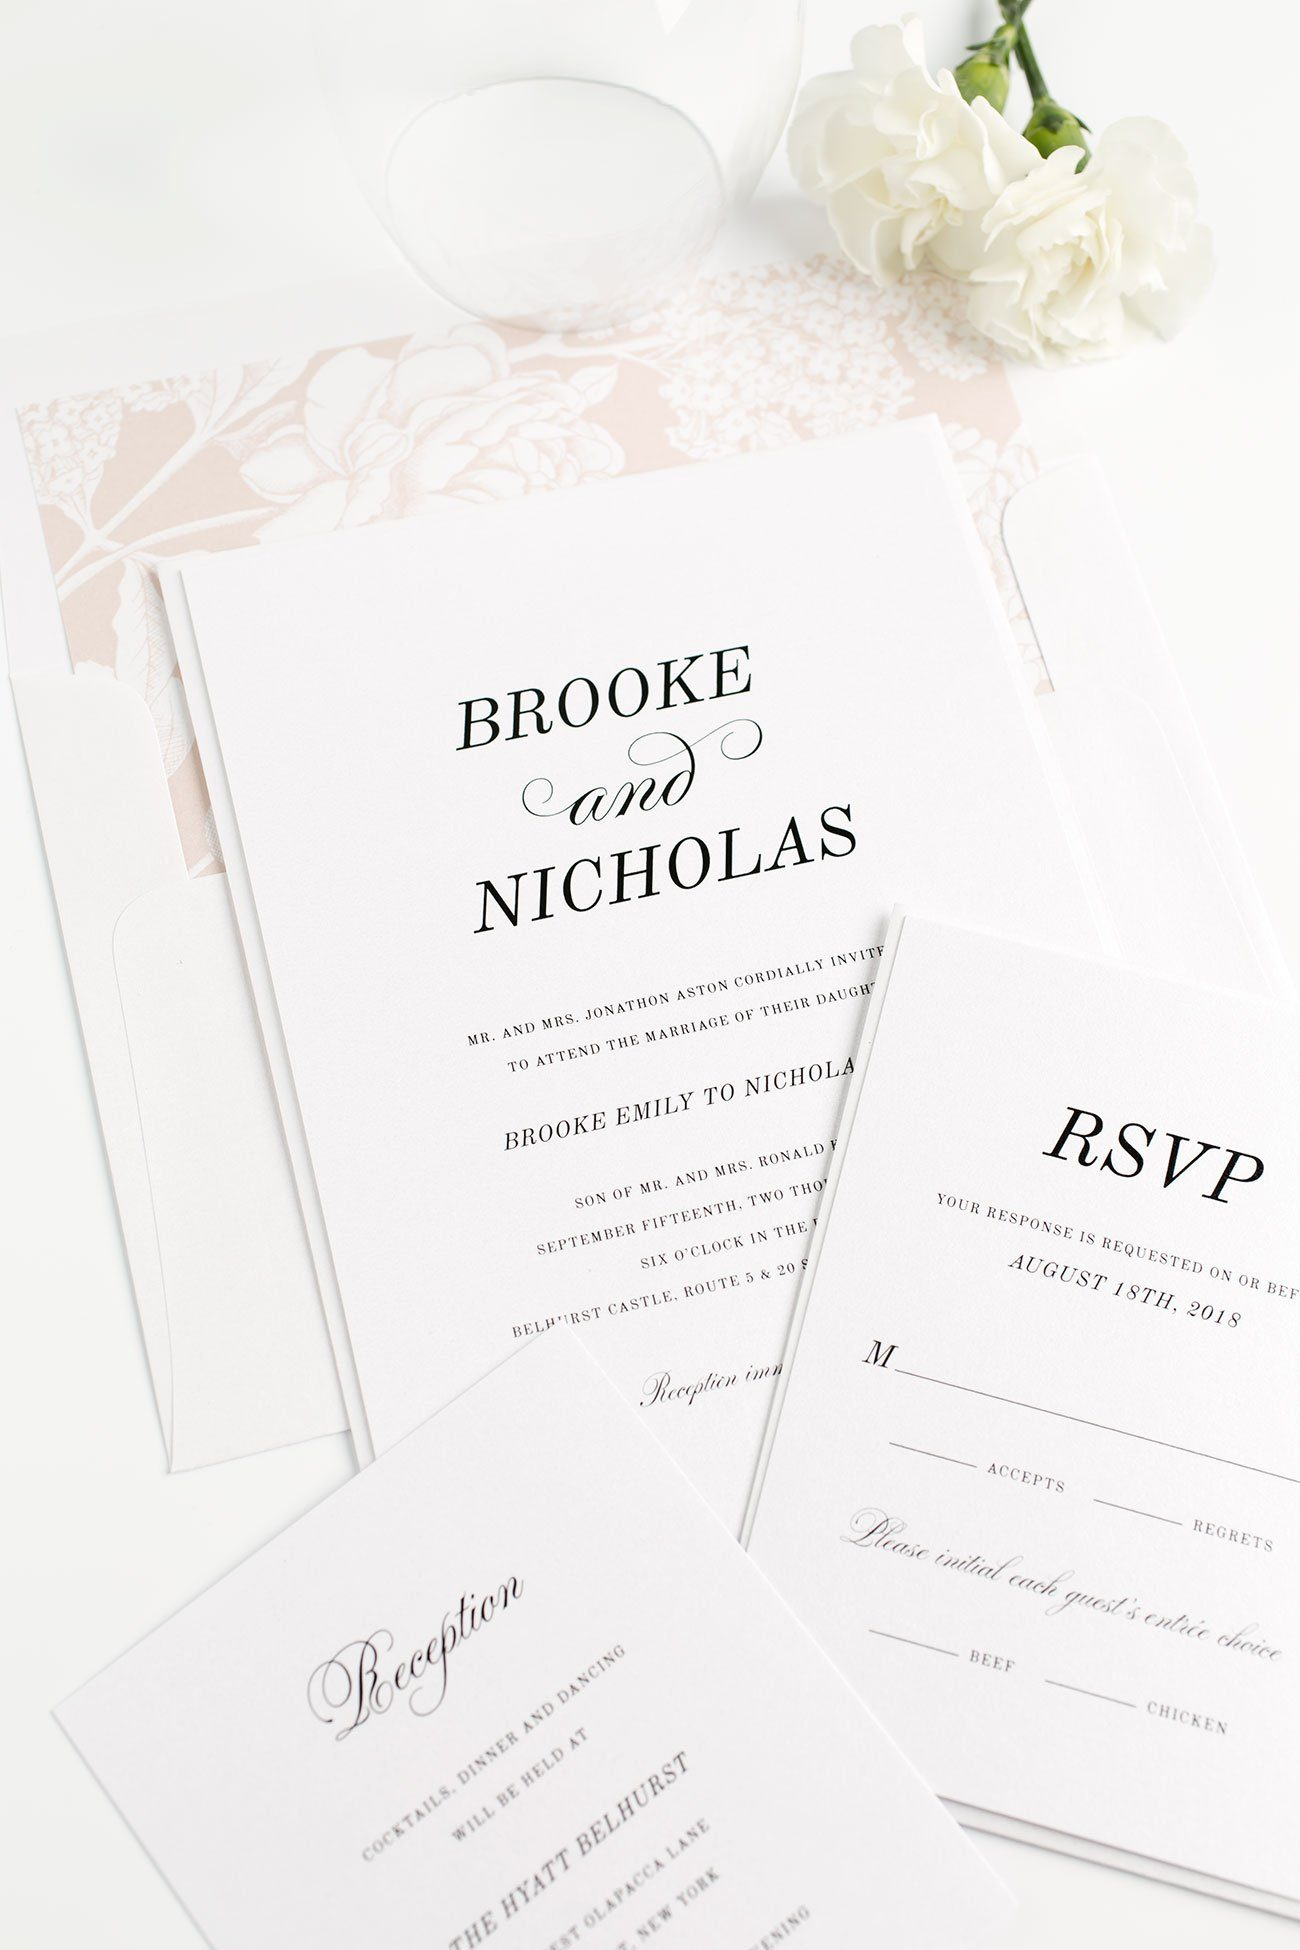 rose gold wedding invitations with a floral envelope liner - Rose Gold Wedding Invitations